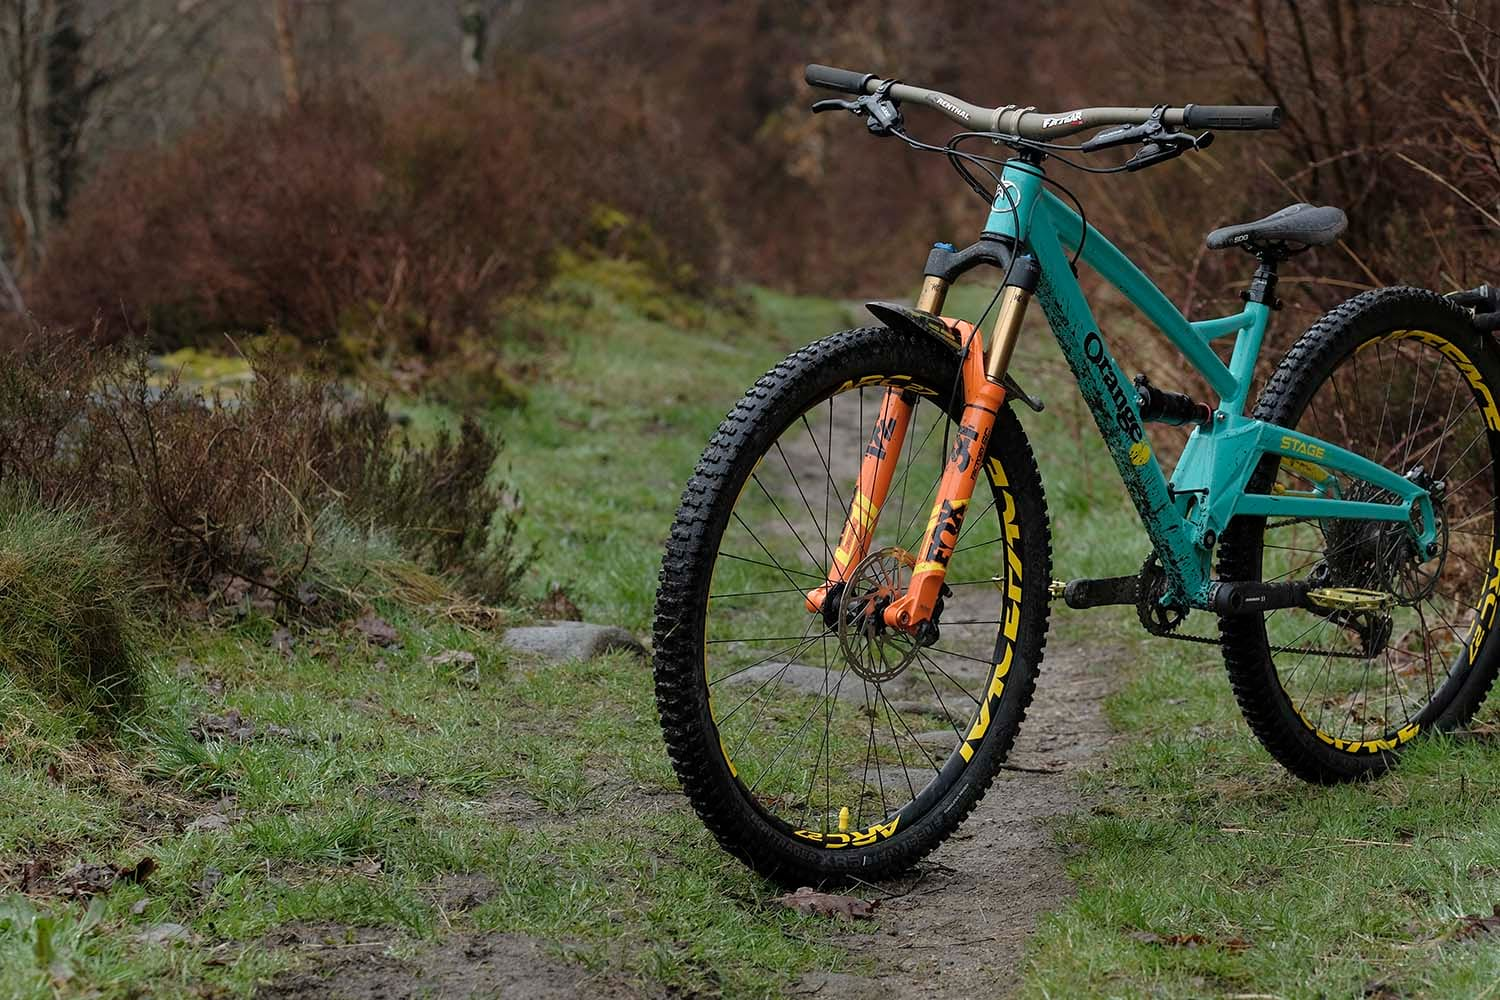 Review: Fox's brand new 34 Step-Cast fork is here from the future